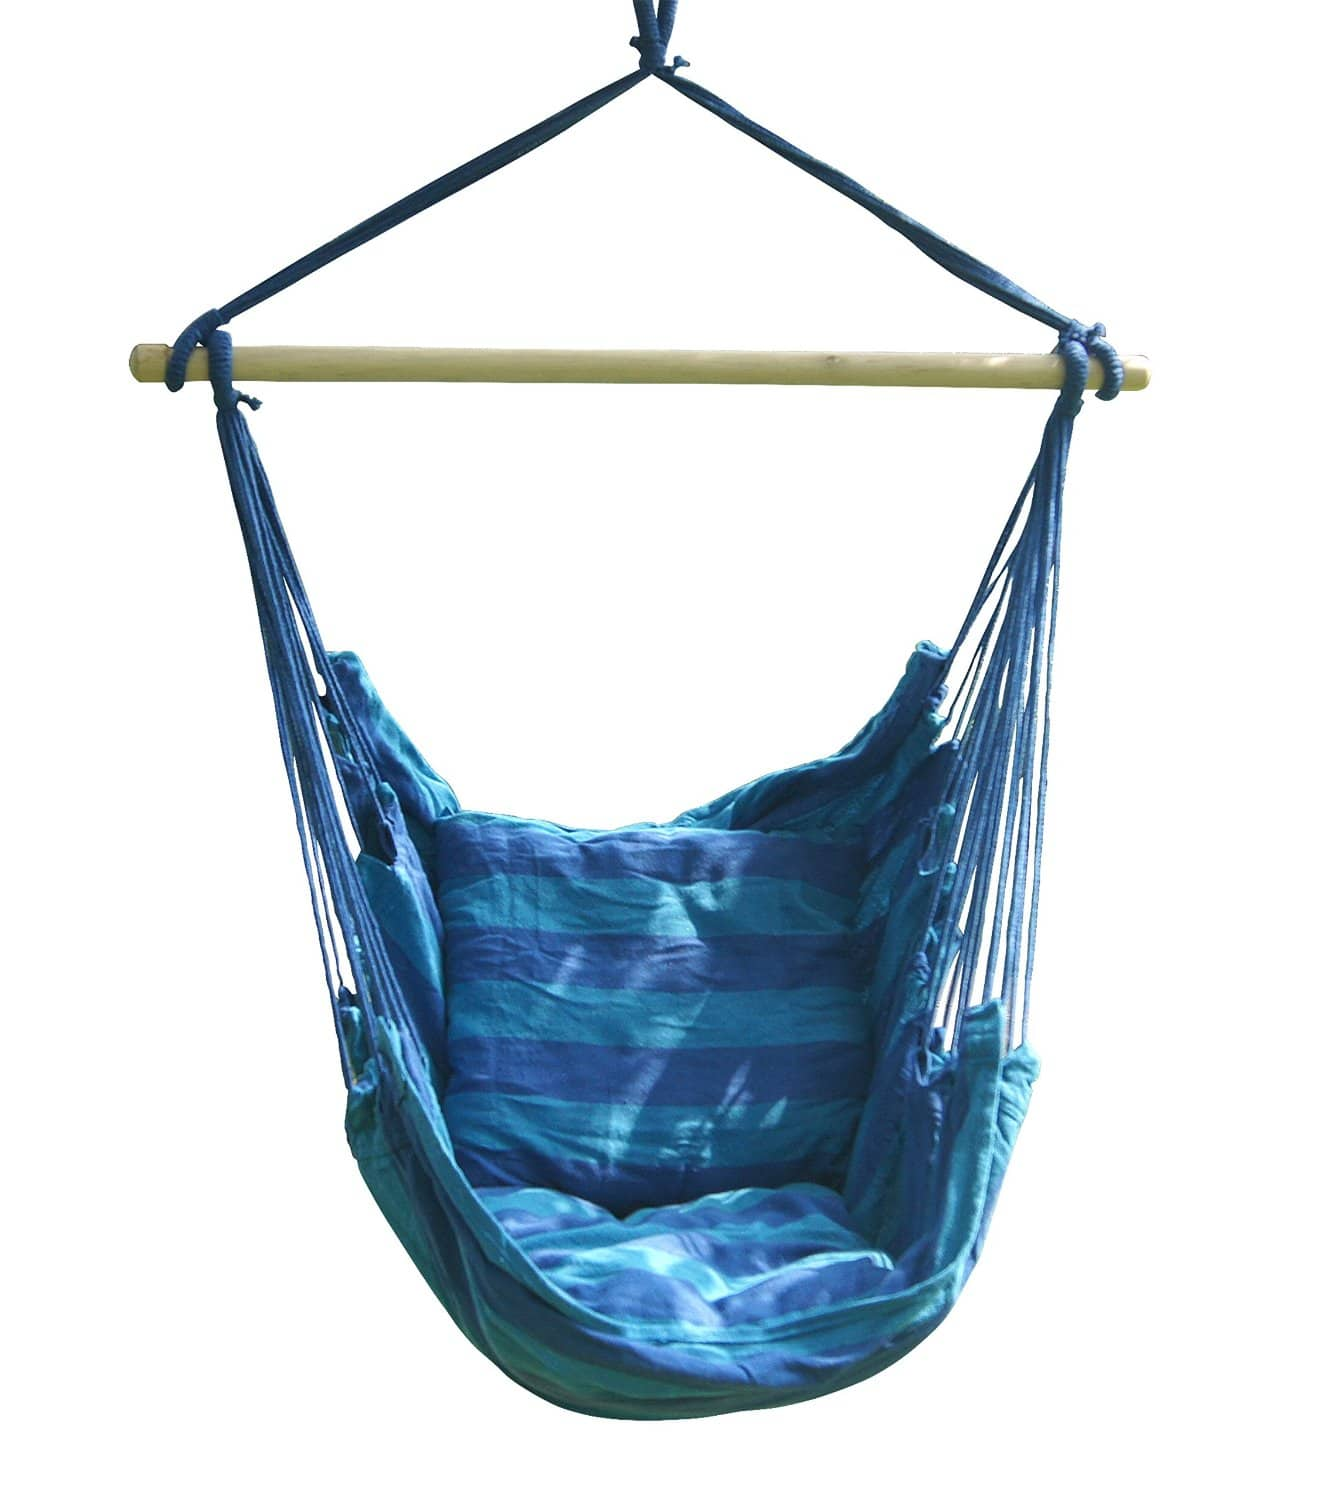 Air blasters hanging rope chair swing hanging hammock for Hanging couch swing